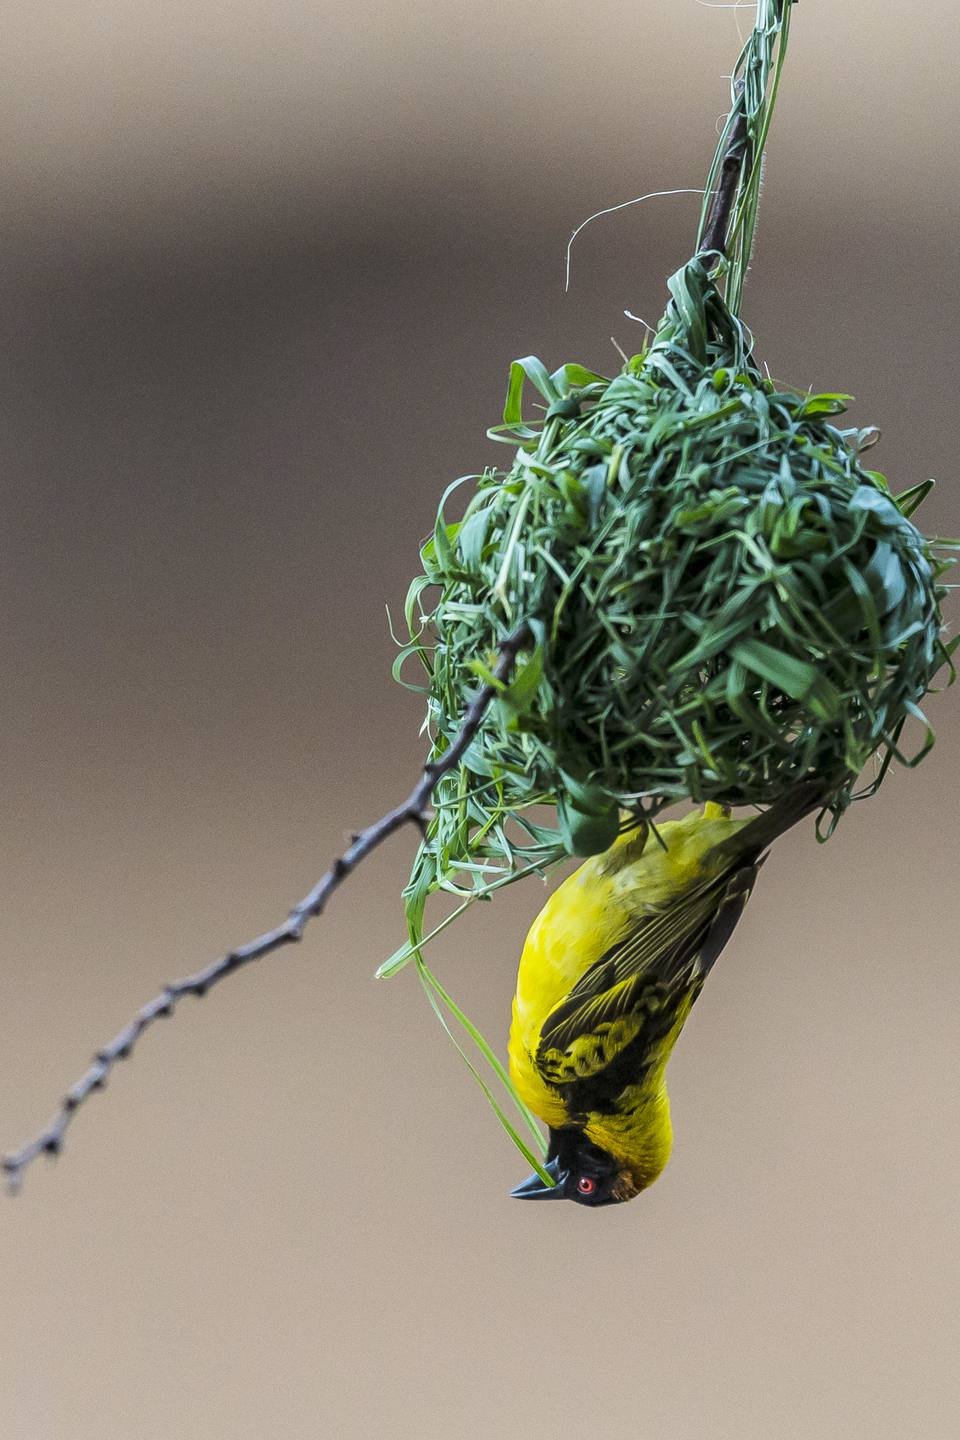 Male Black Headed Weaver bird